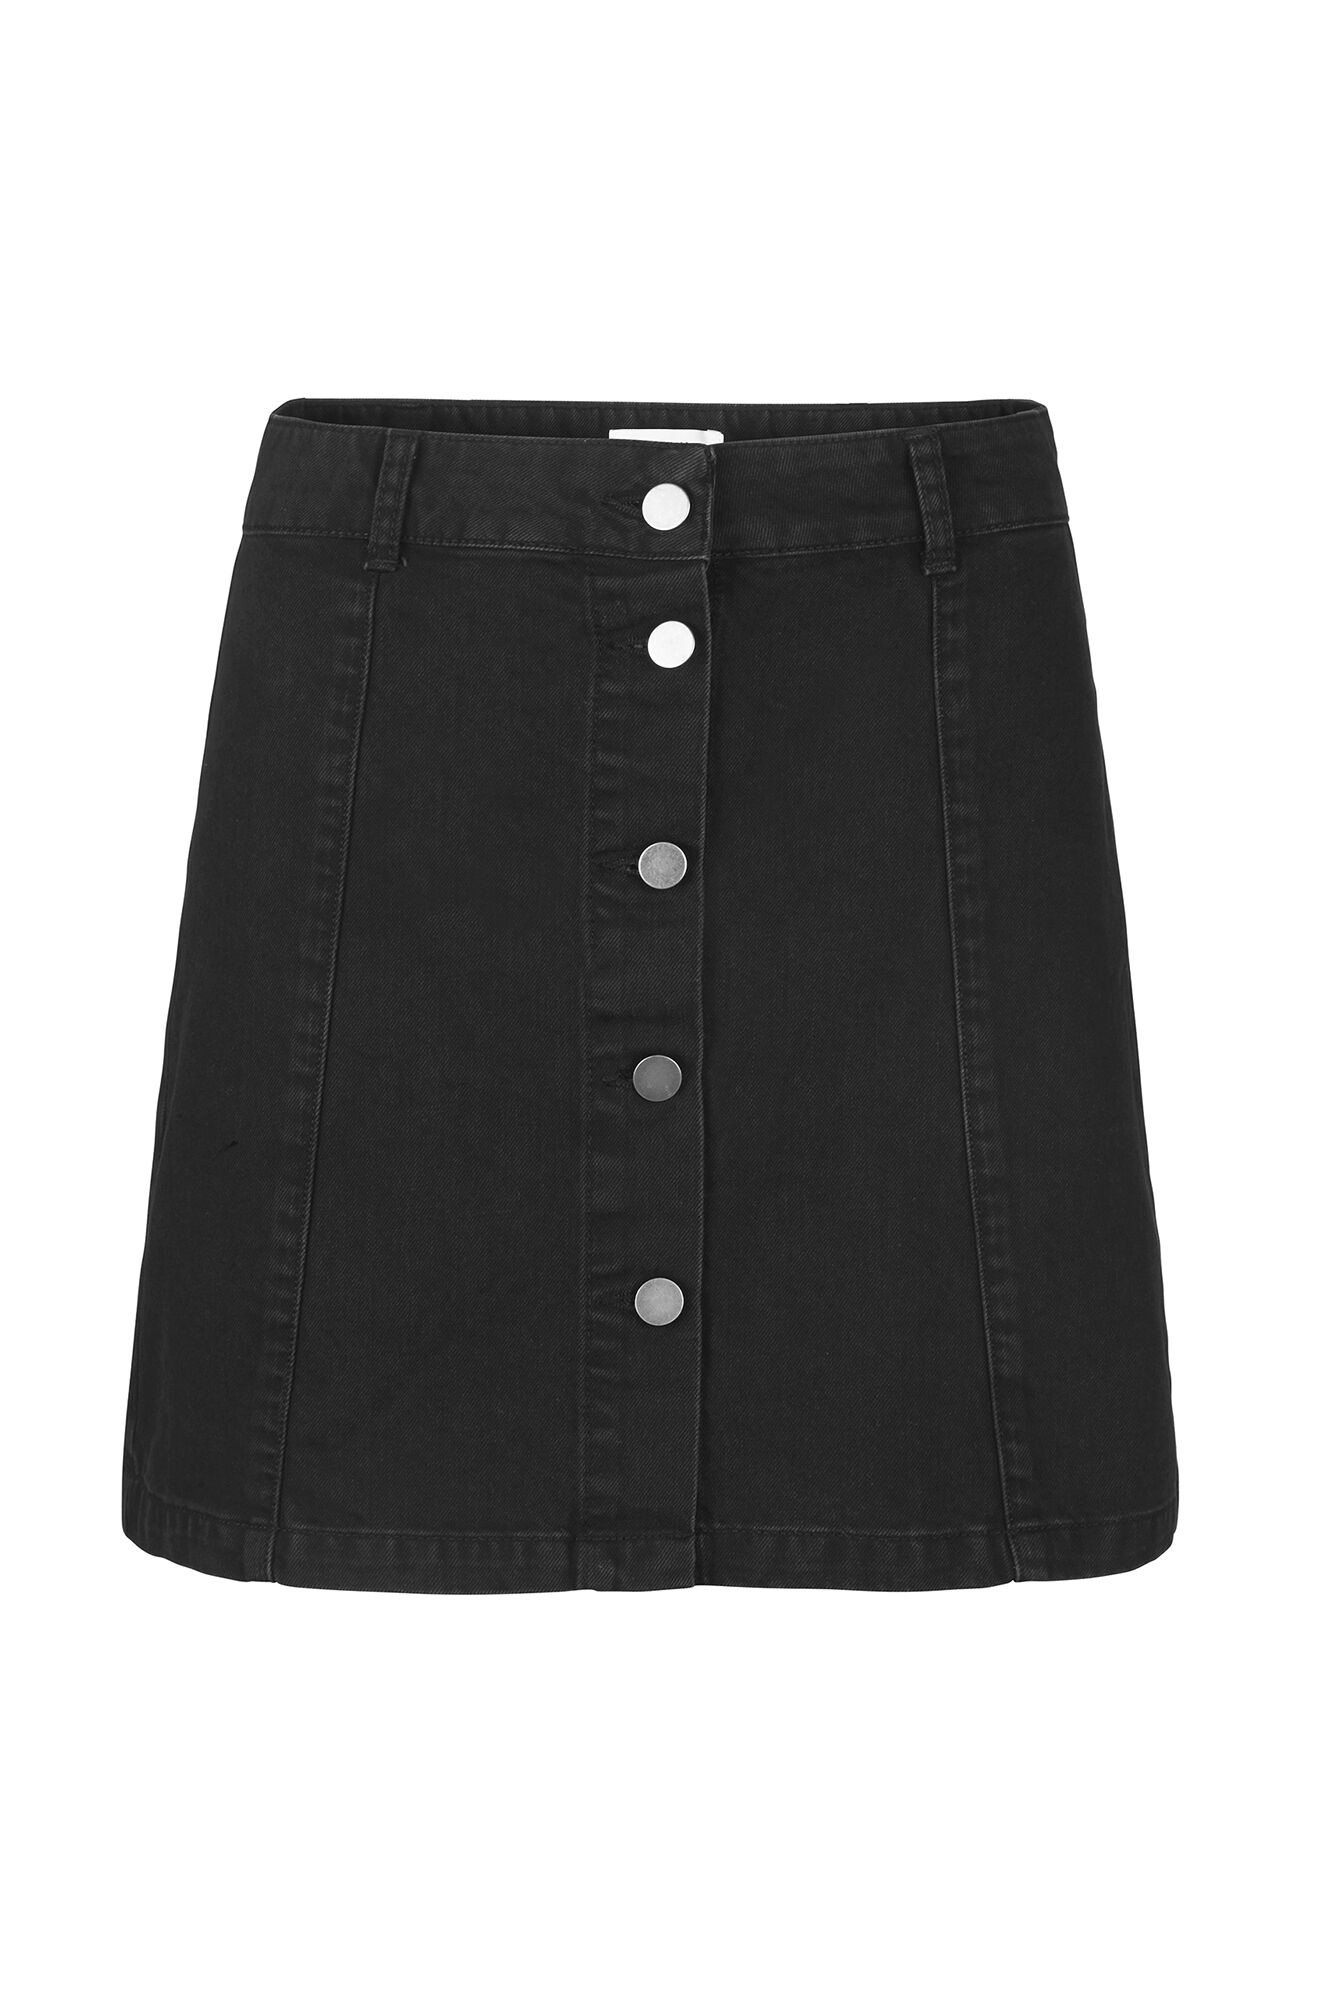 ENTIKVA SKIRT WORN BLACK 6356